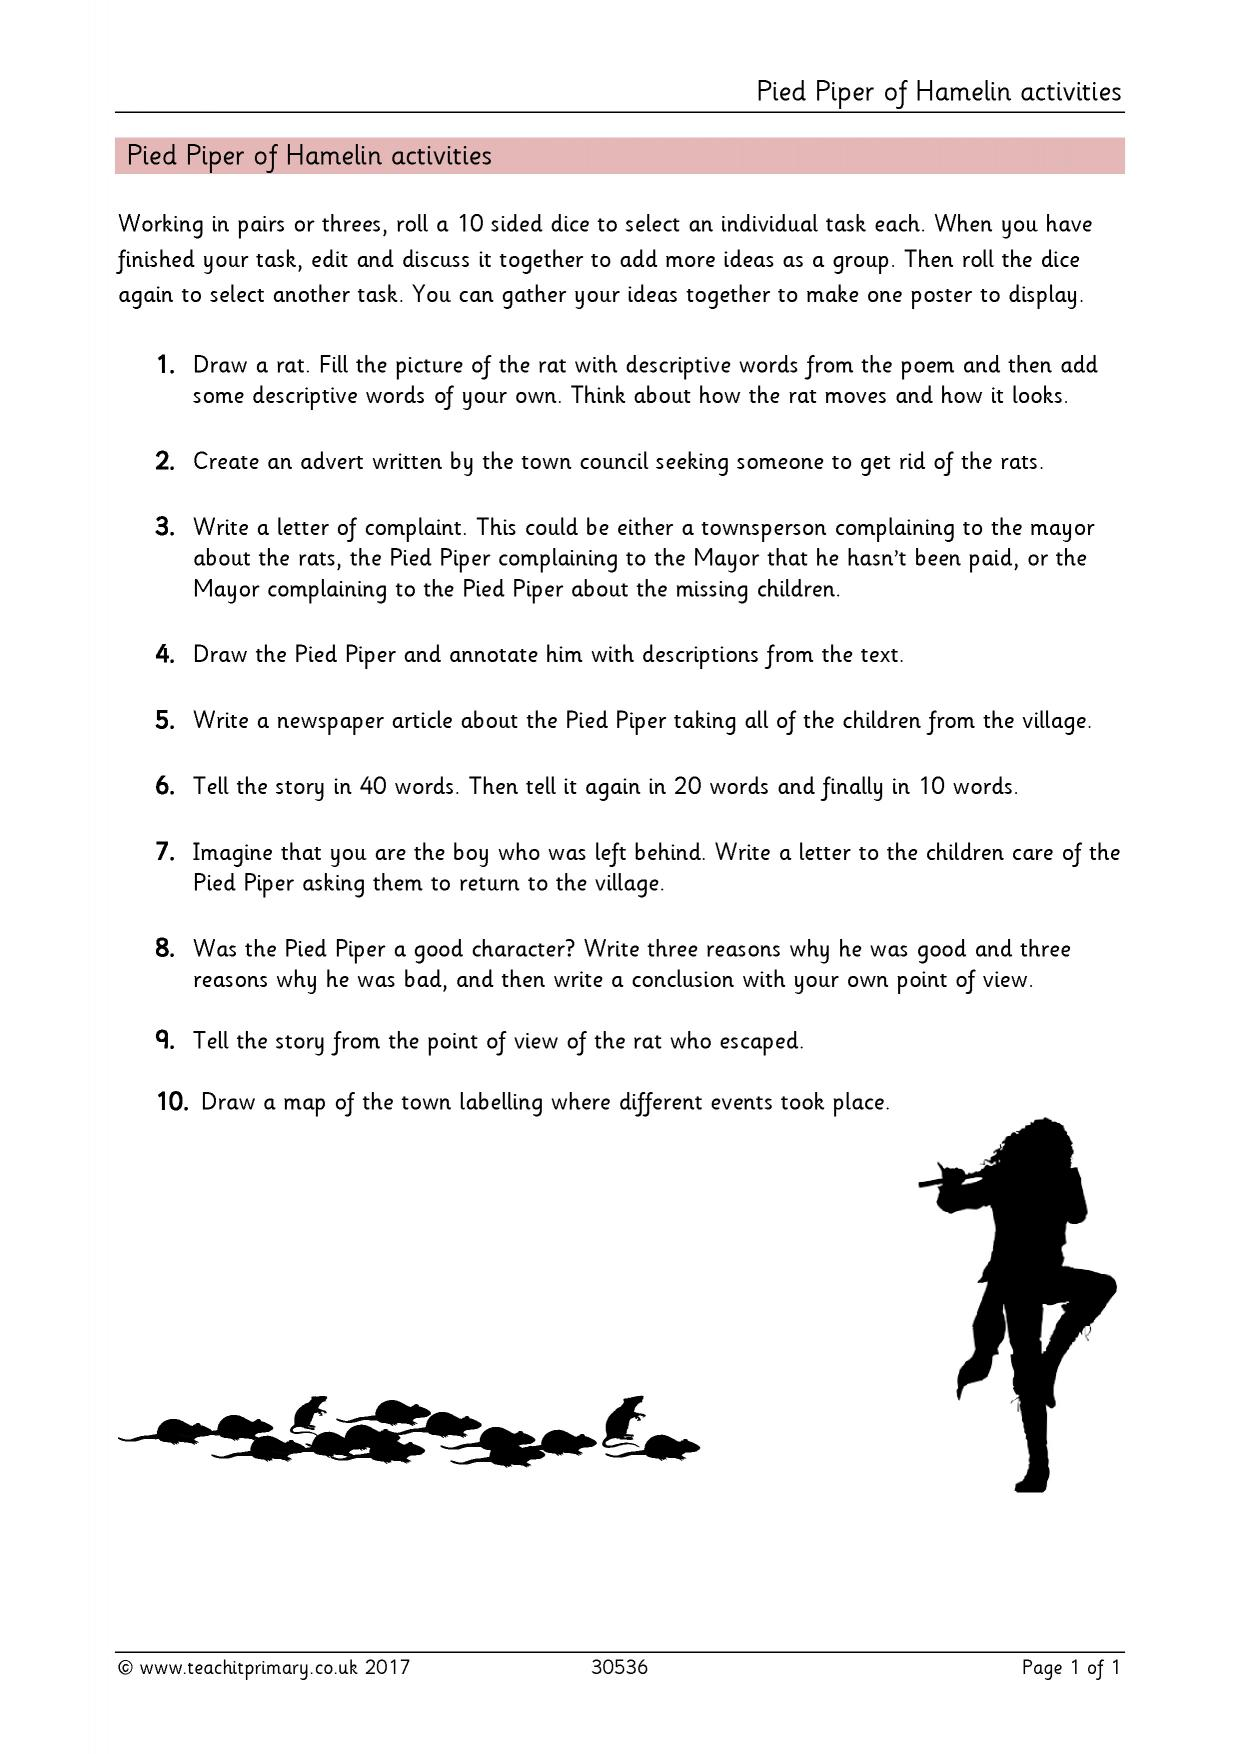 the pied piper of hamelin essay In this short essay we look at only two hypotheses about where the pied piper of hamelin could have gone.